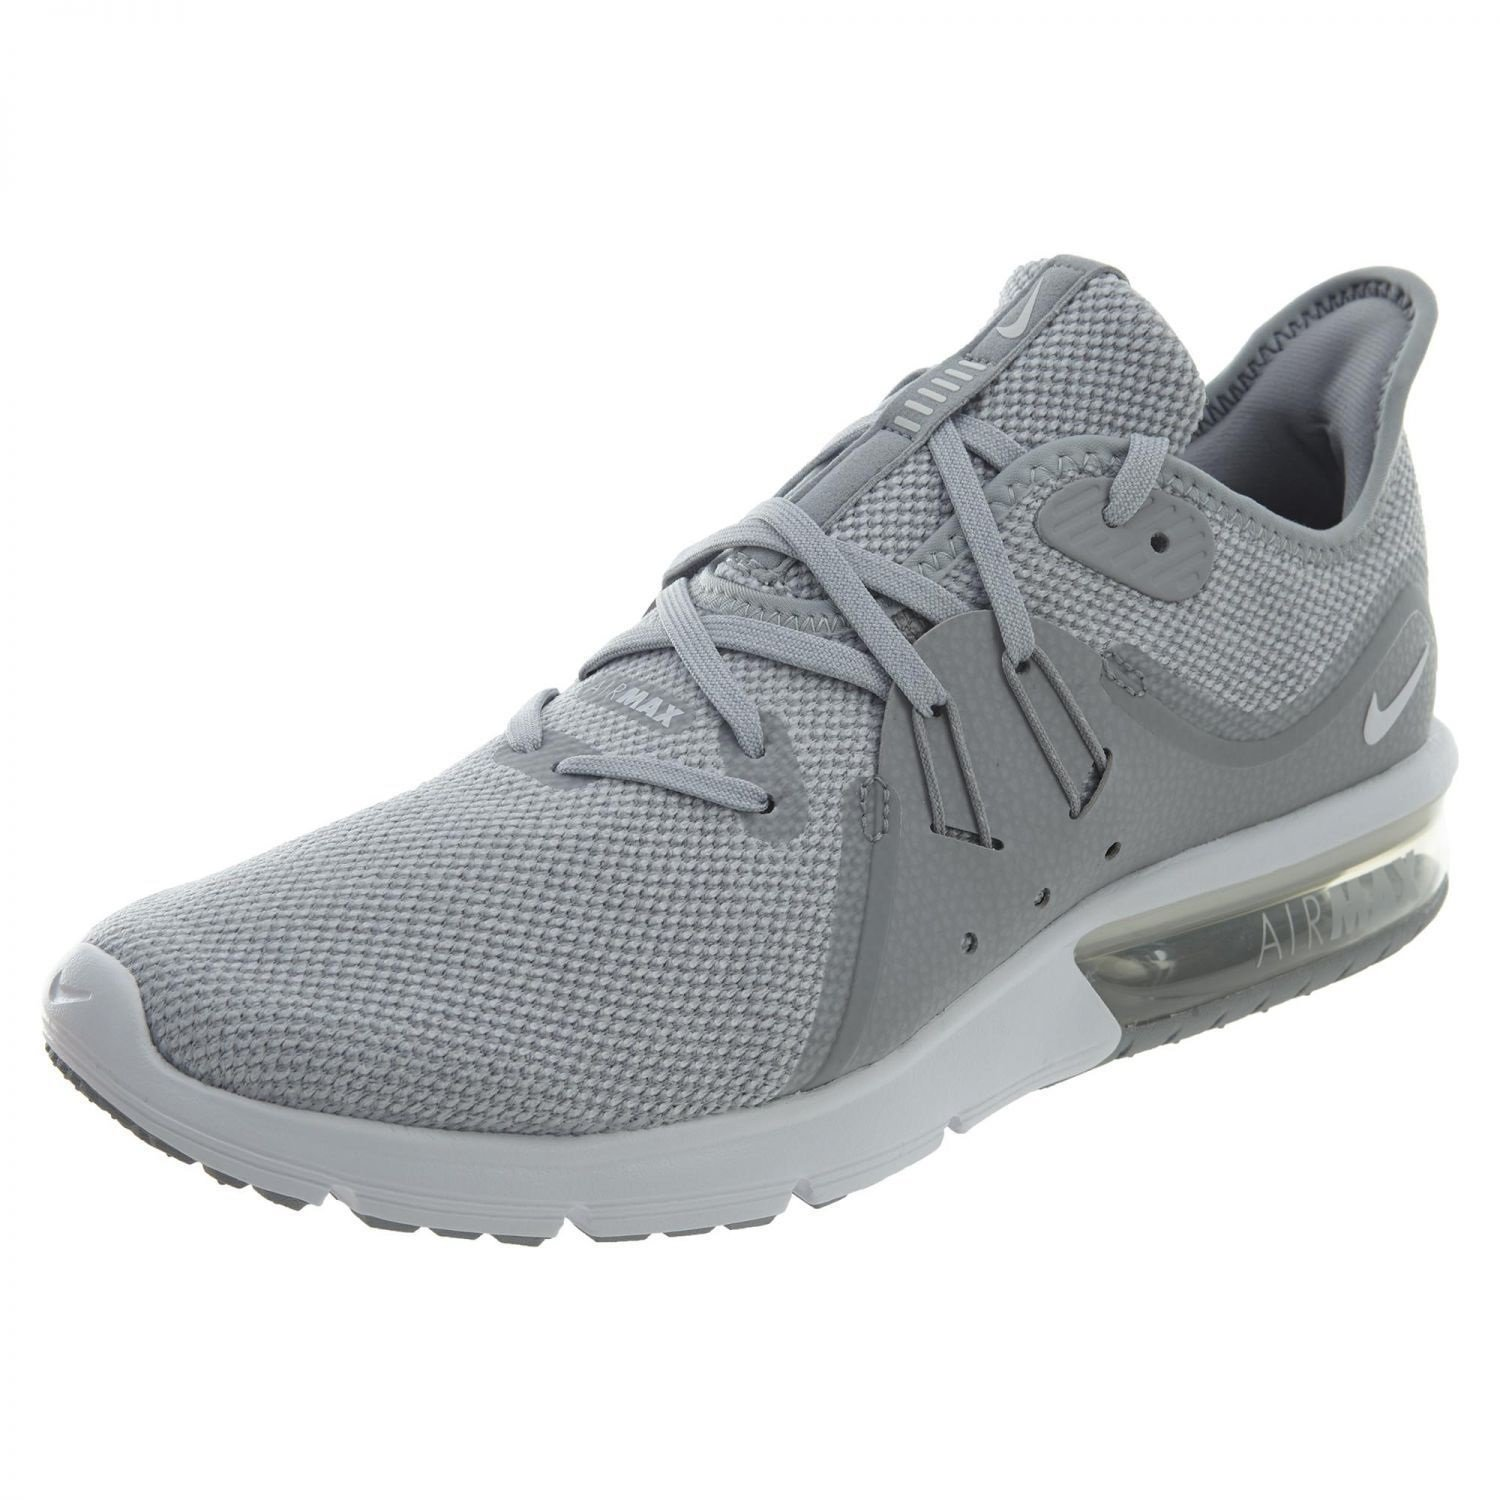 super popular c0e91 49cc7 Galleon - Nike Men s Air Max Sequent 3 Running Shoes Wolf Grey White-Pure  Platinum 7